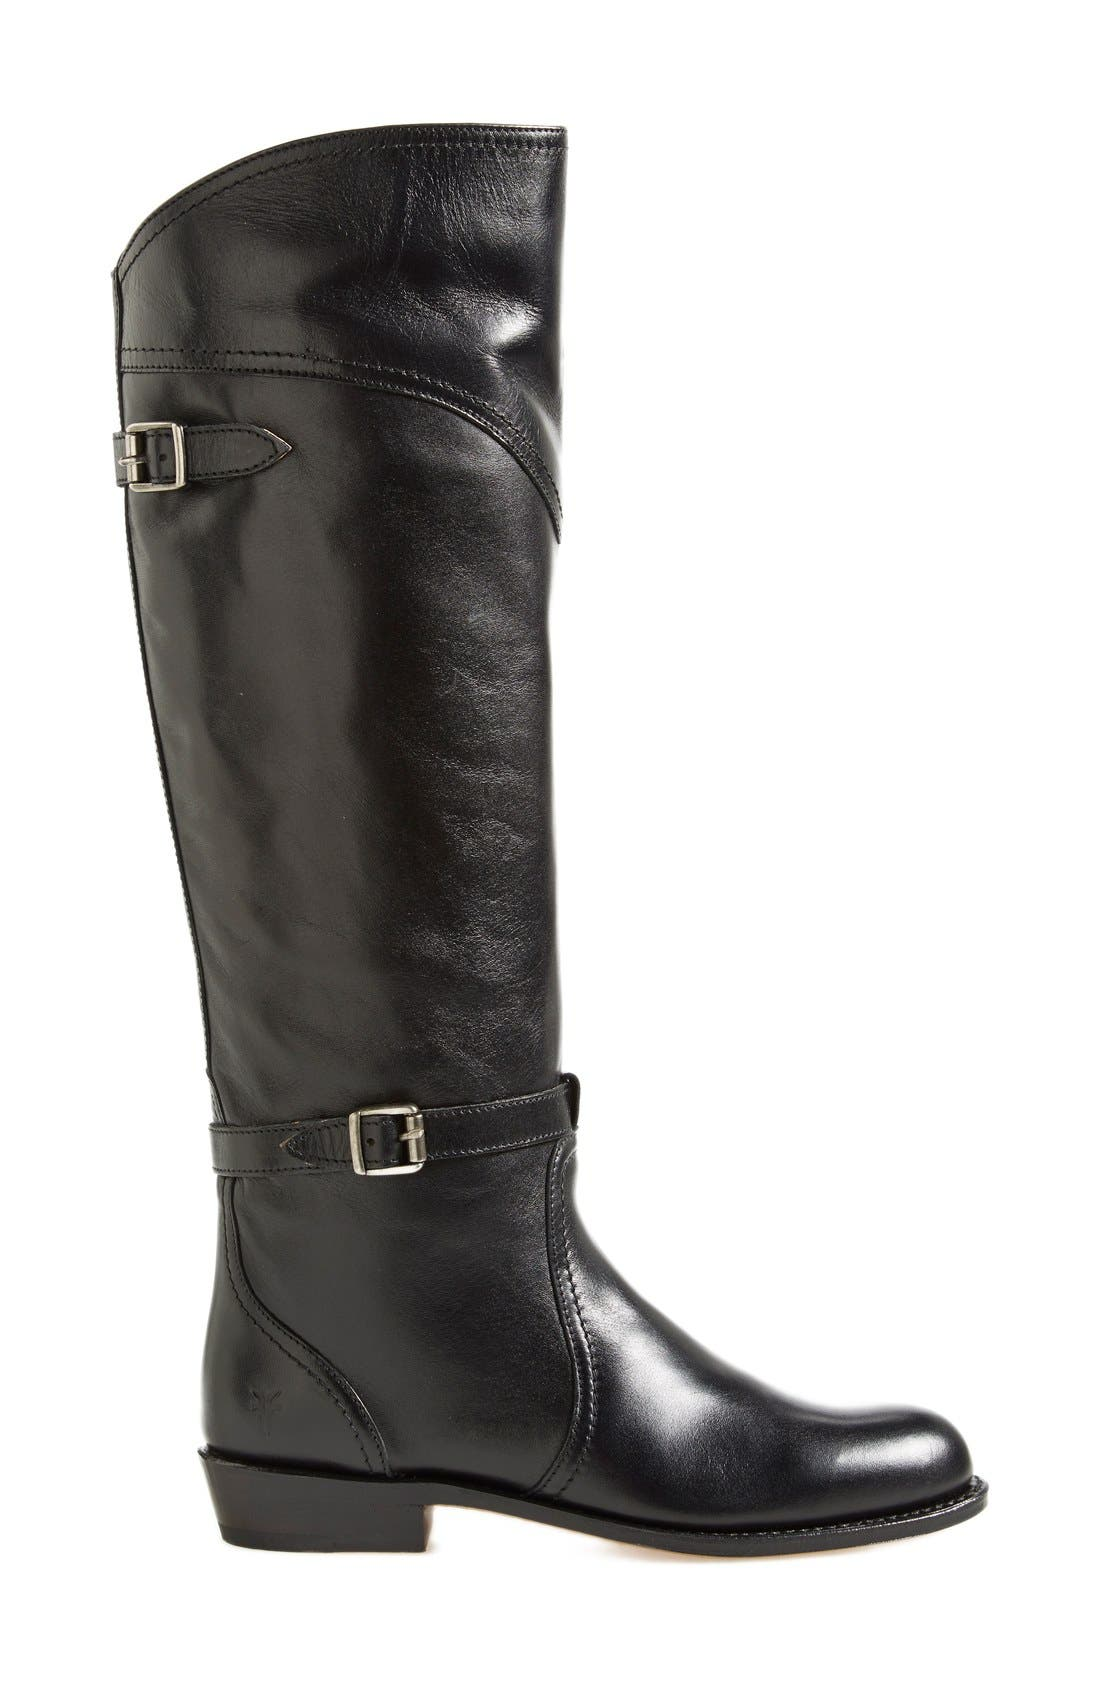 Main Image - Frye 'Dorado' Leather Riding Boot